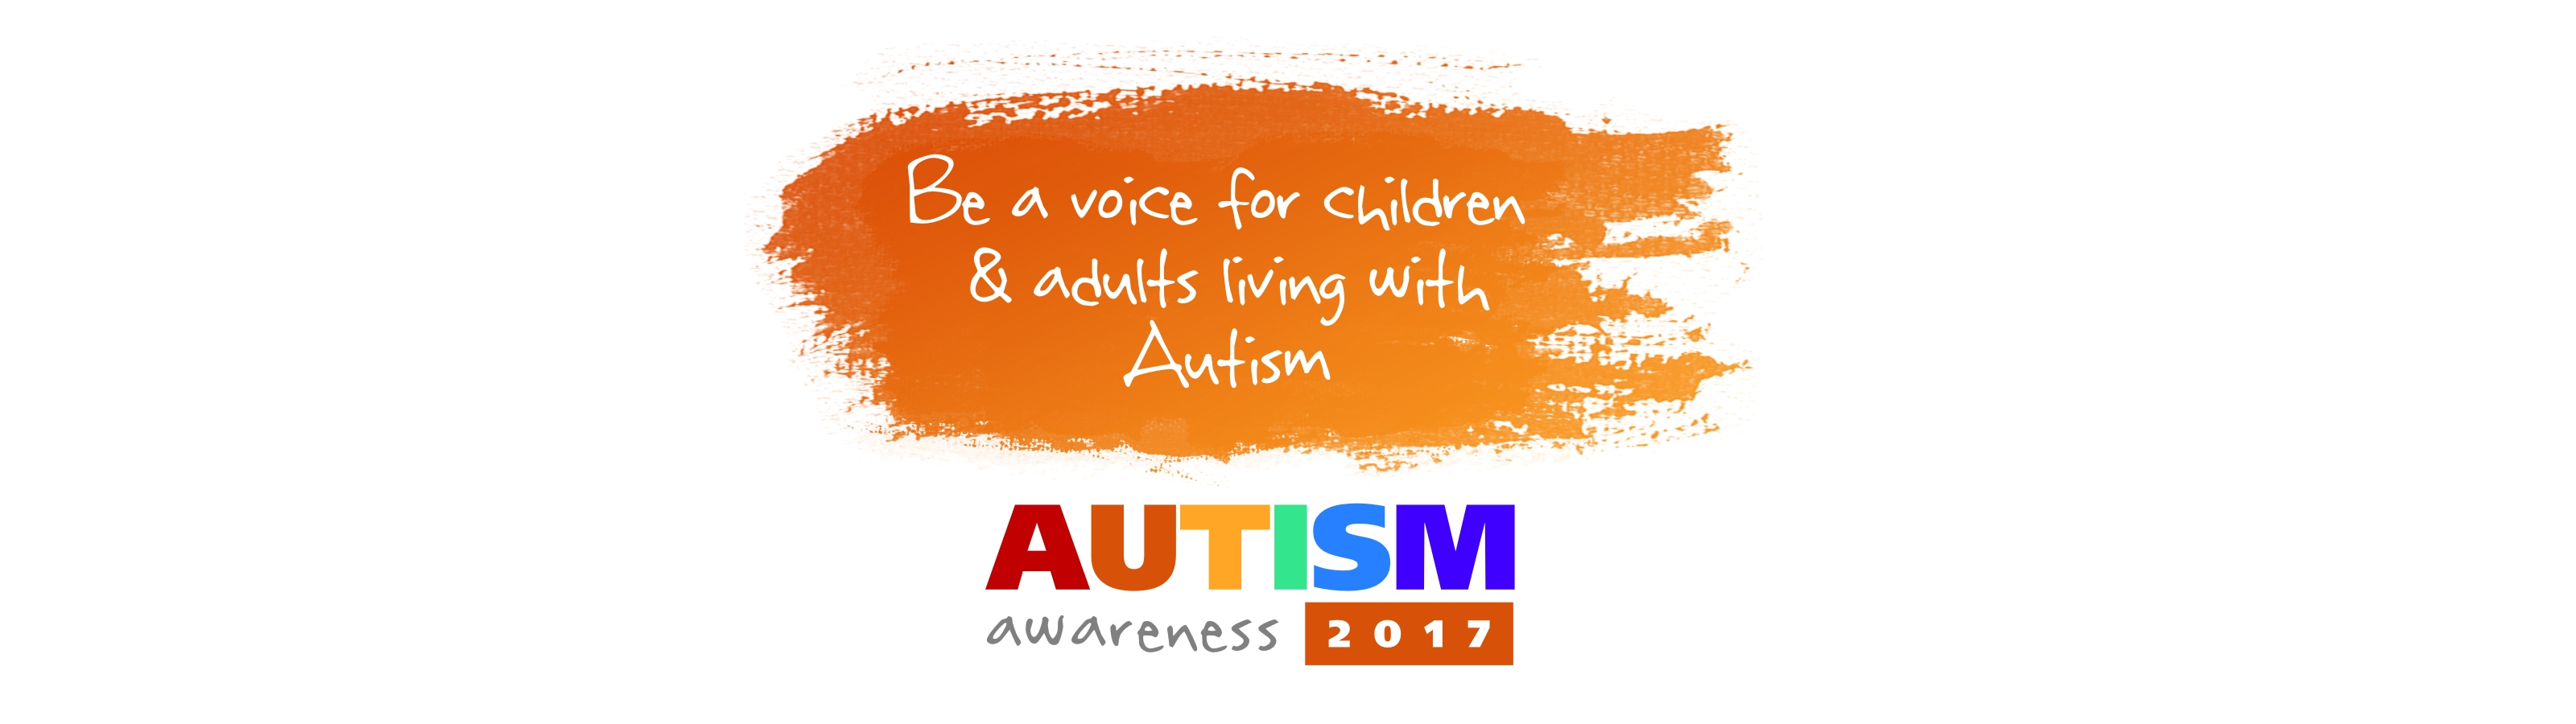 Be a voice for children and adults living with Autism – Autism Awareness 2017